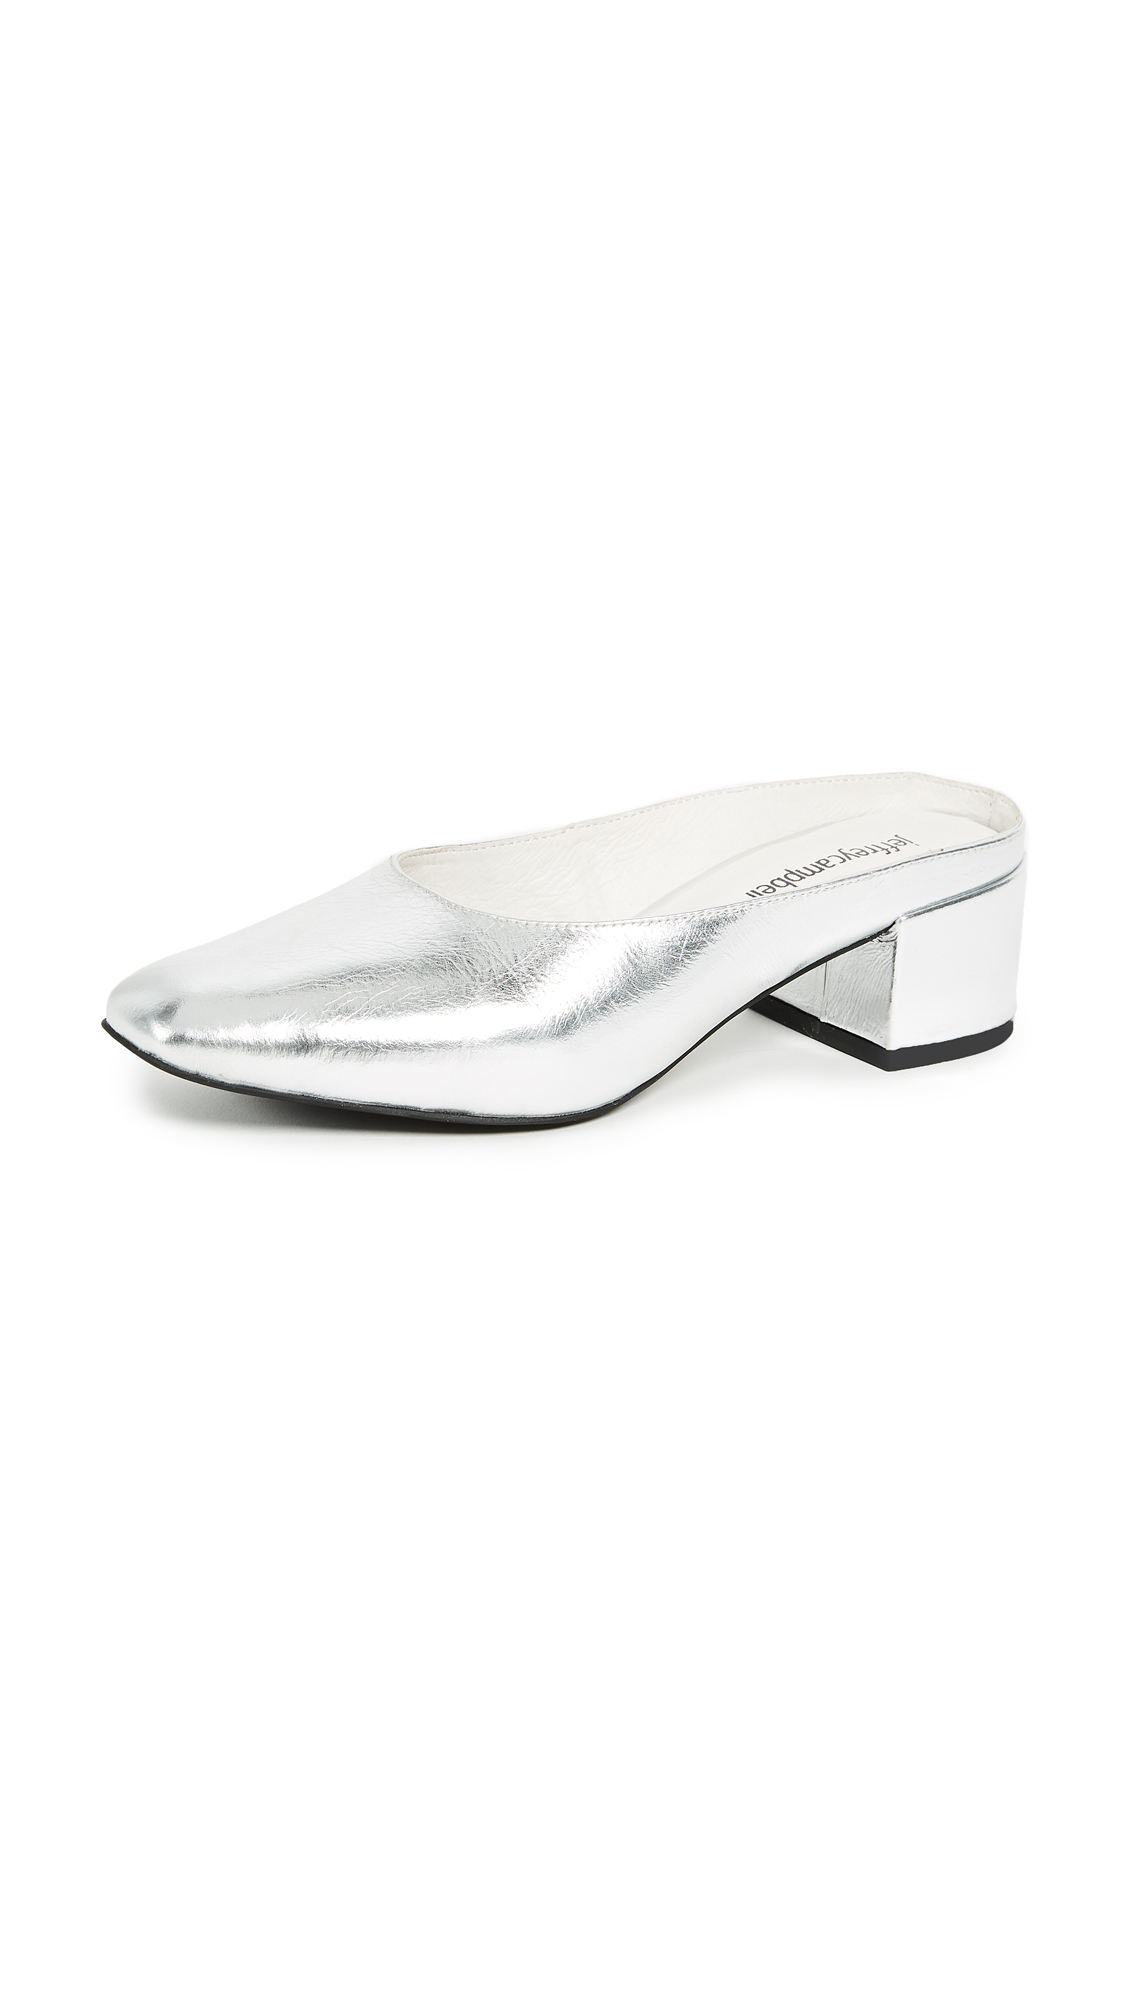 Jeffrey Campbell Oceane Block Heel Metallic Pumps - Silver